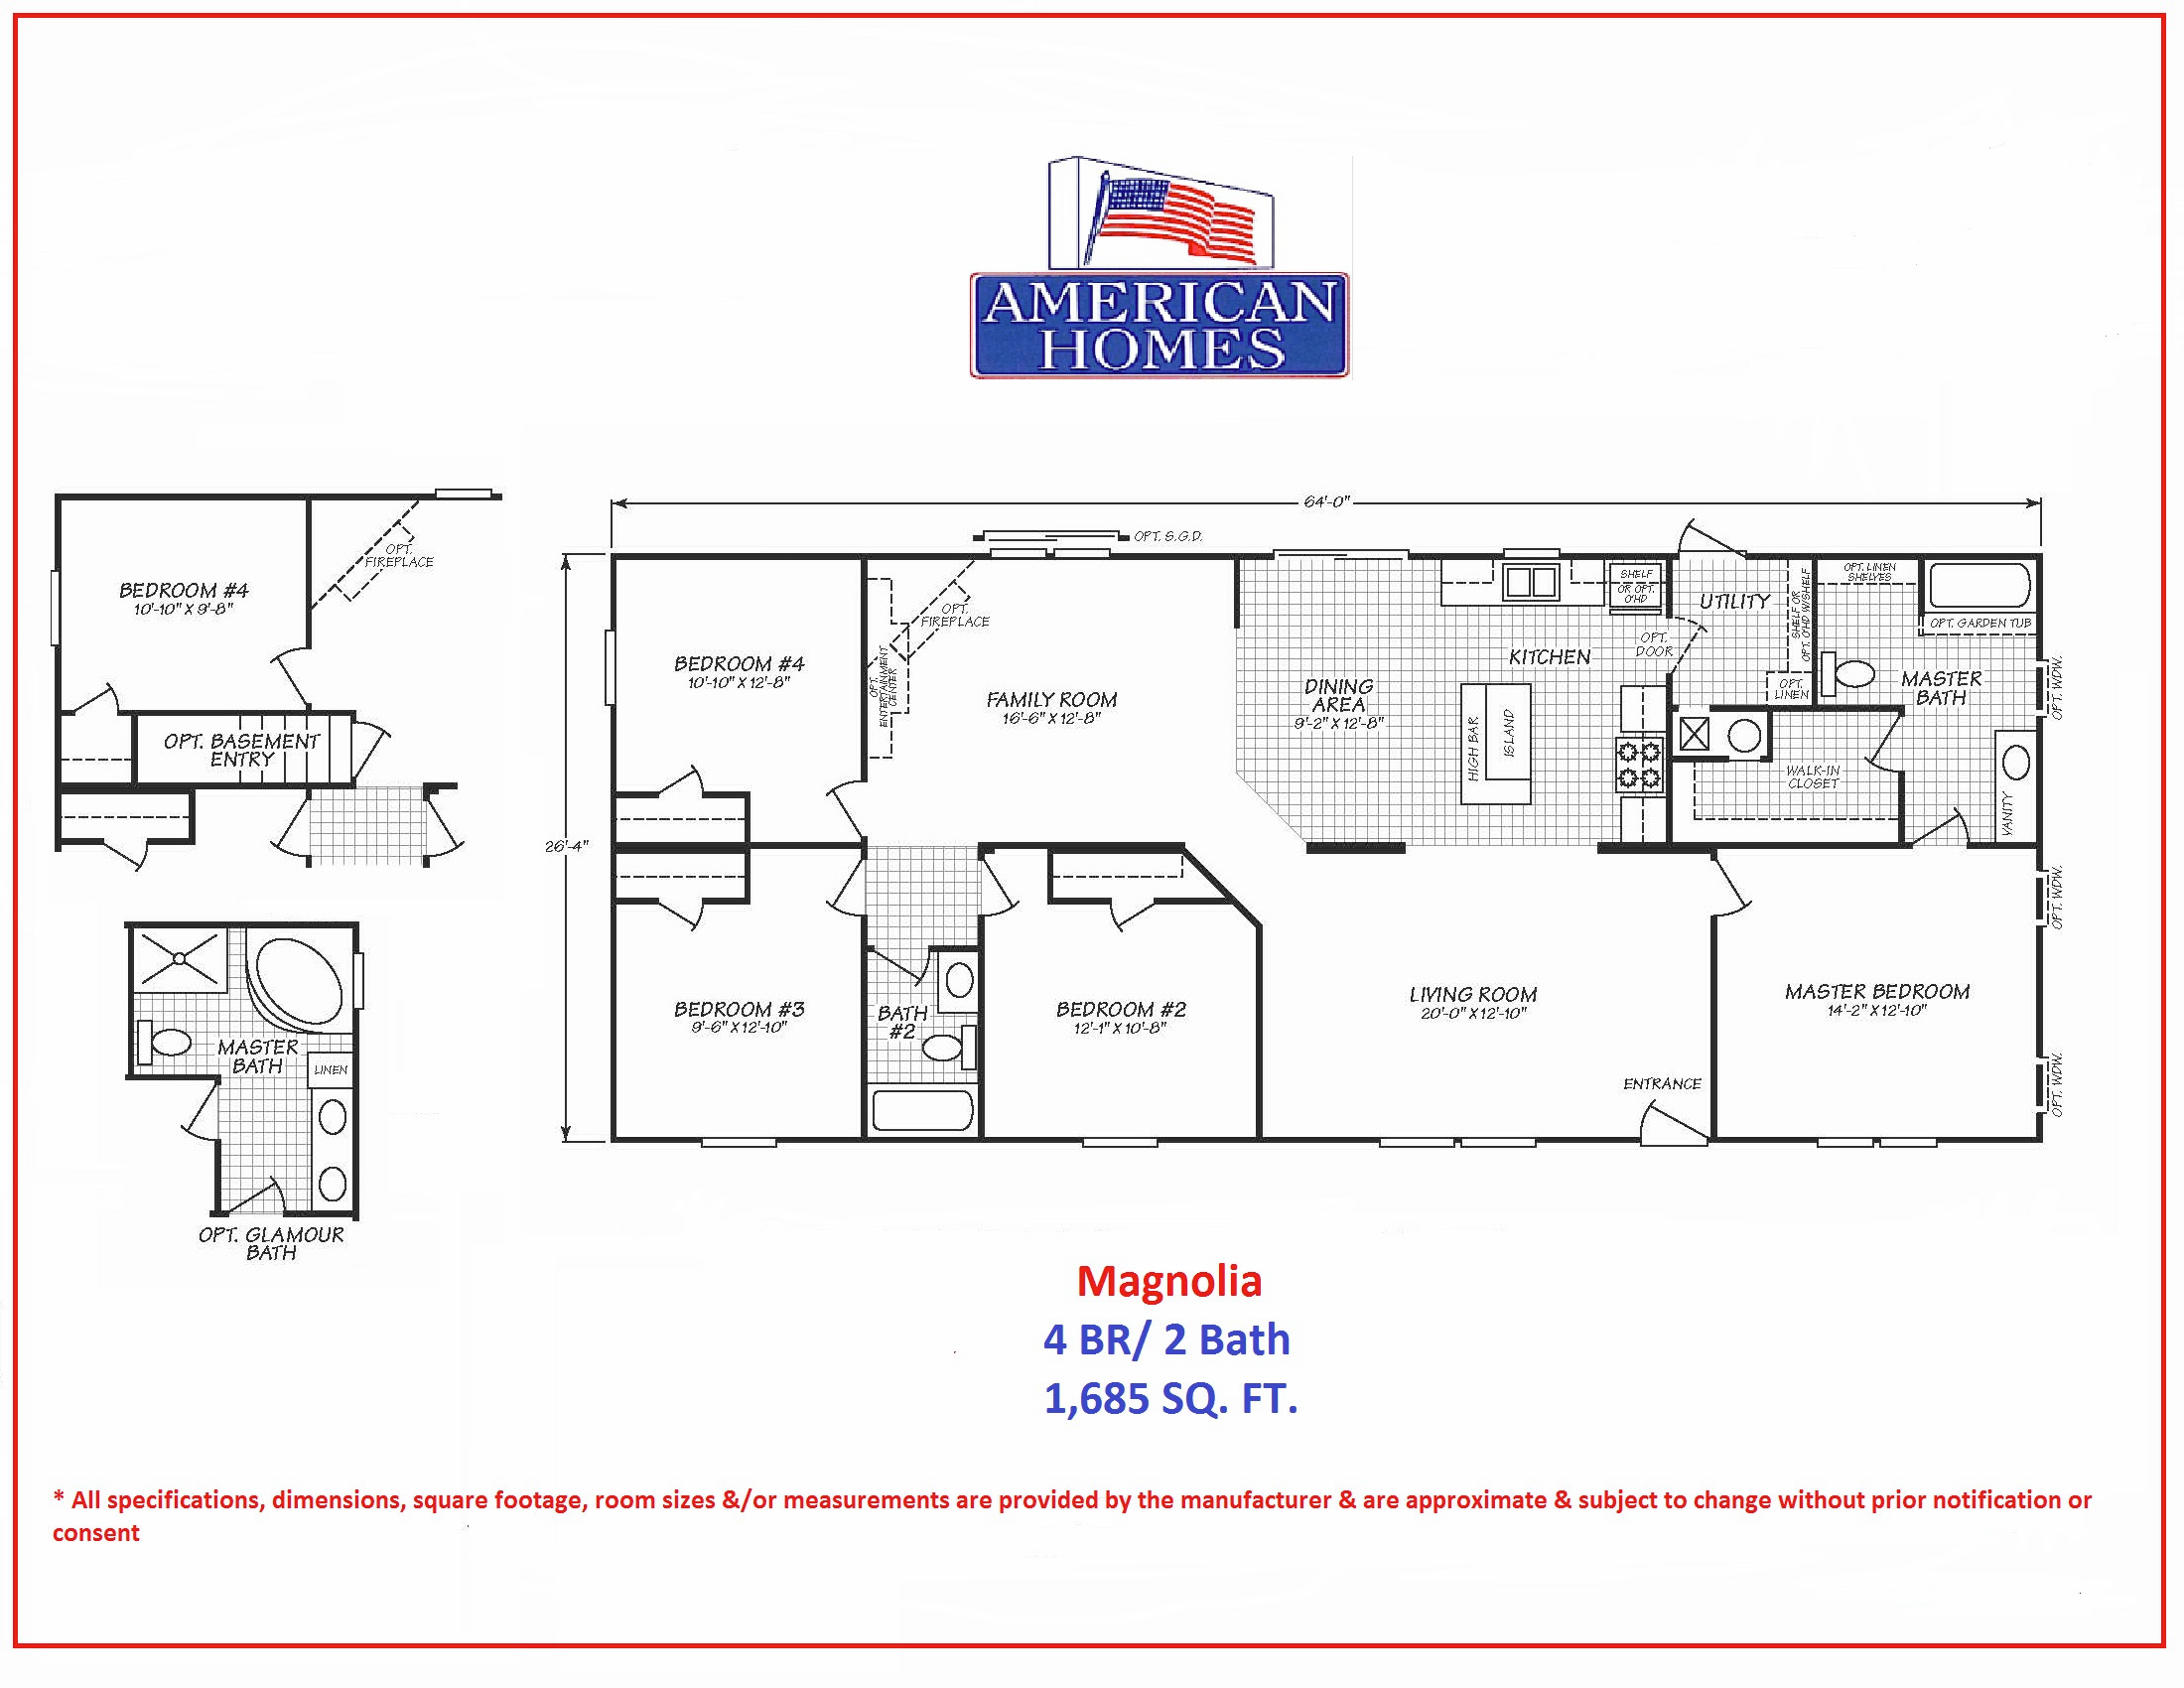 Awesome magnolia homes floor plans graphics home - Magnolia homes floor plans ...